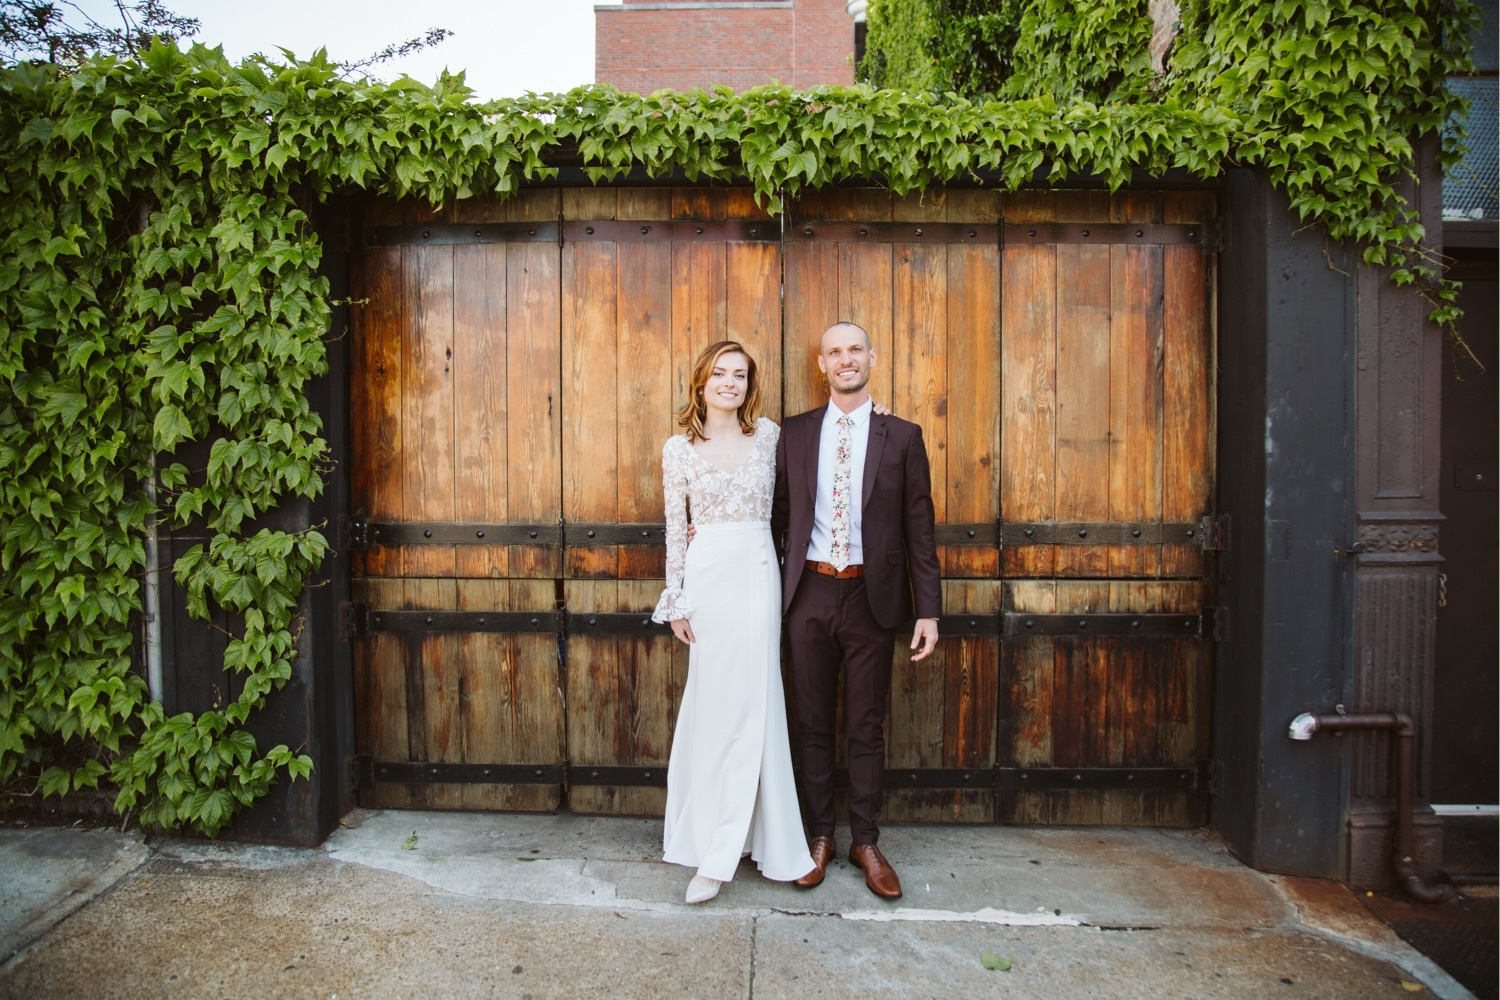 the bride and groom centered in front of the large wooden doors surrounded by green plants at the wedding venue in brooklyn - Aurora Ristorante